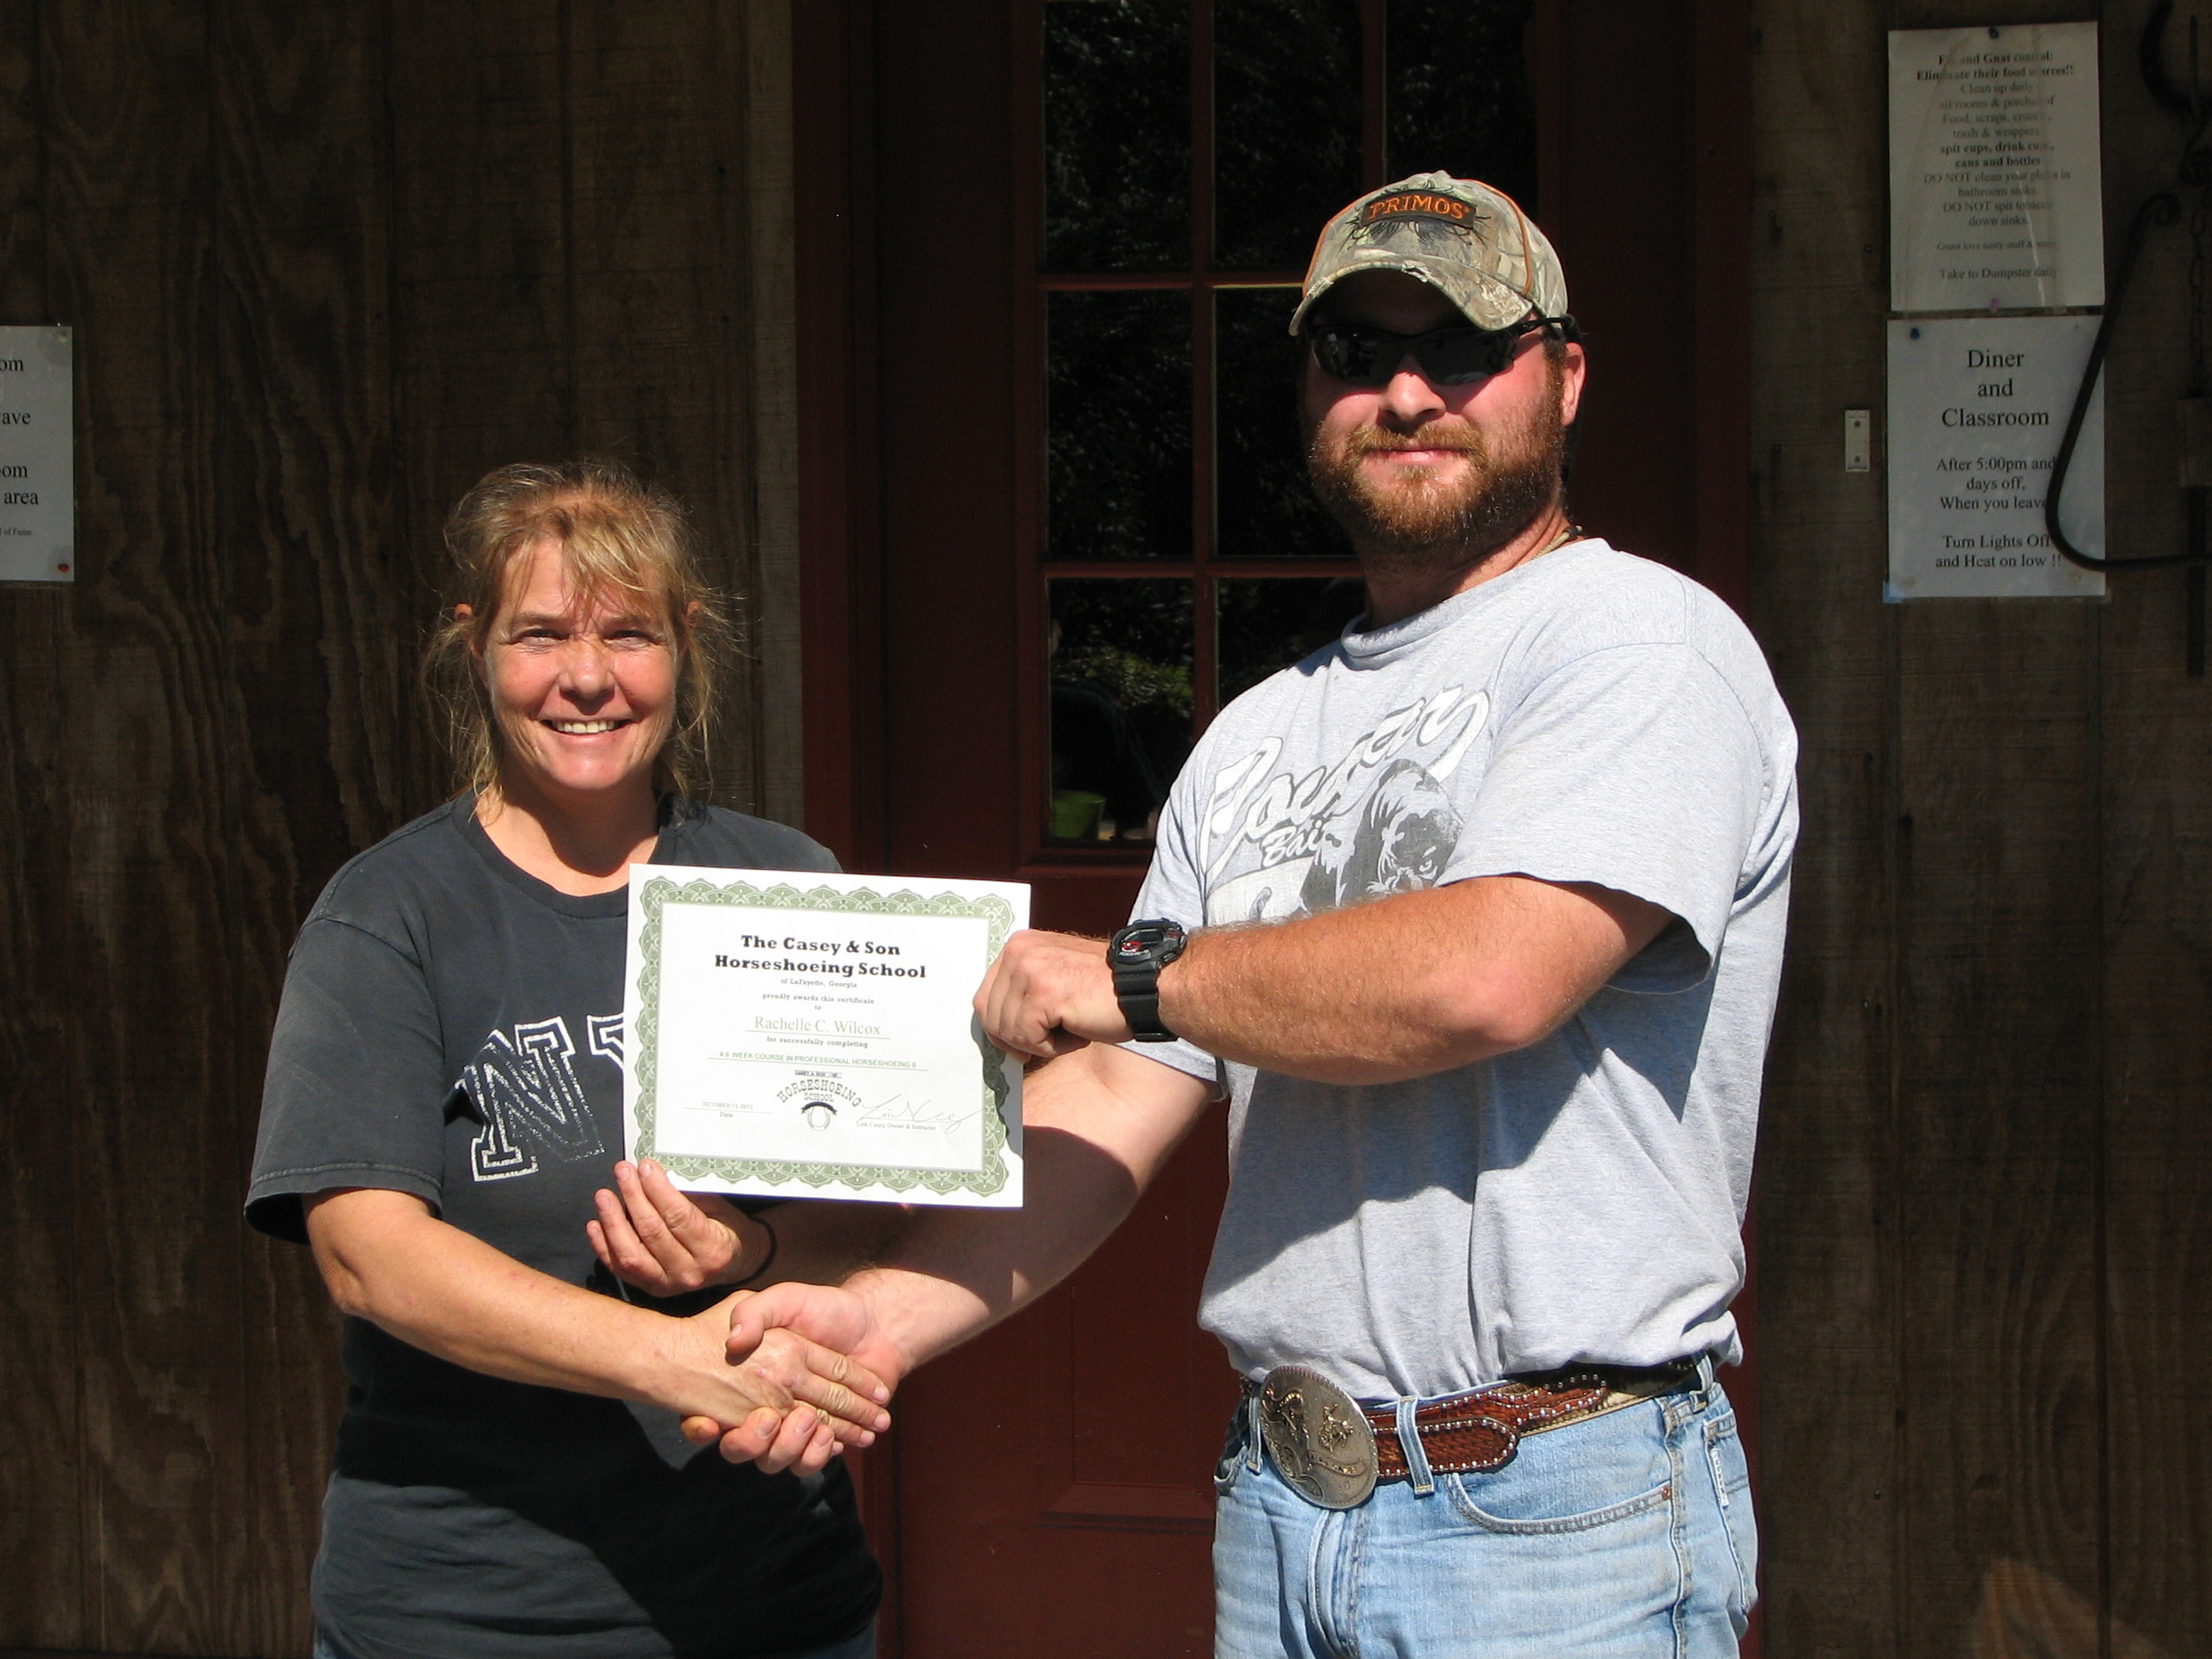 Rachelle Wilcox on graduation day with Link, owner/instructor at Georgia Horseshoeing School 2013